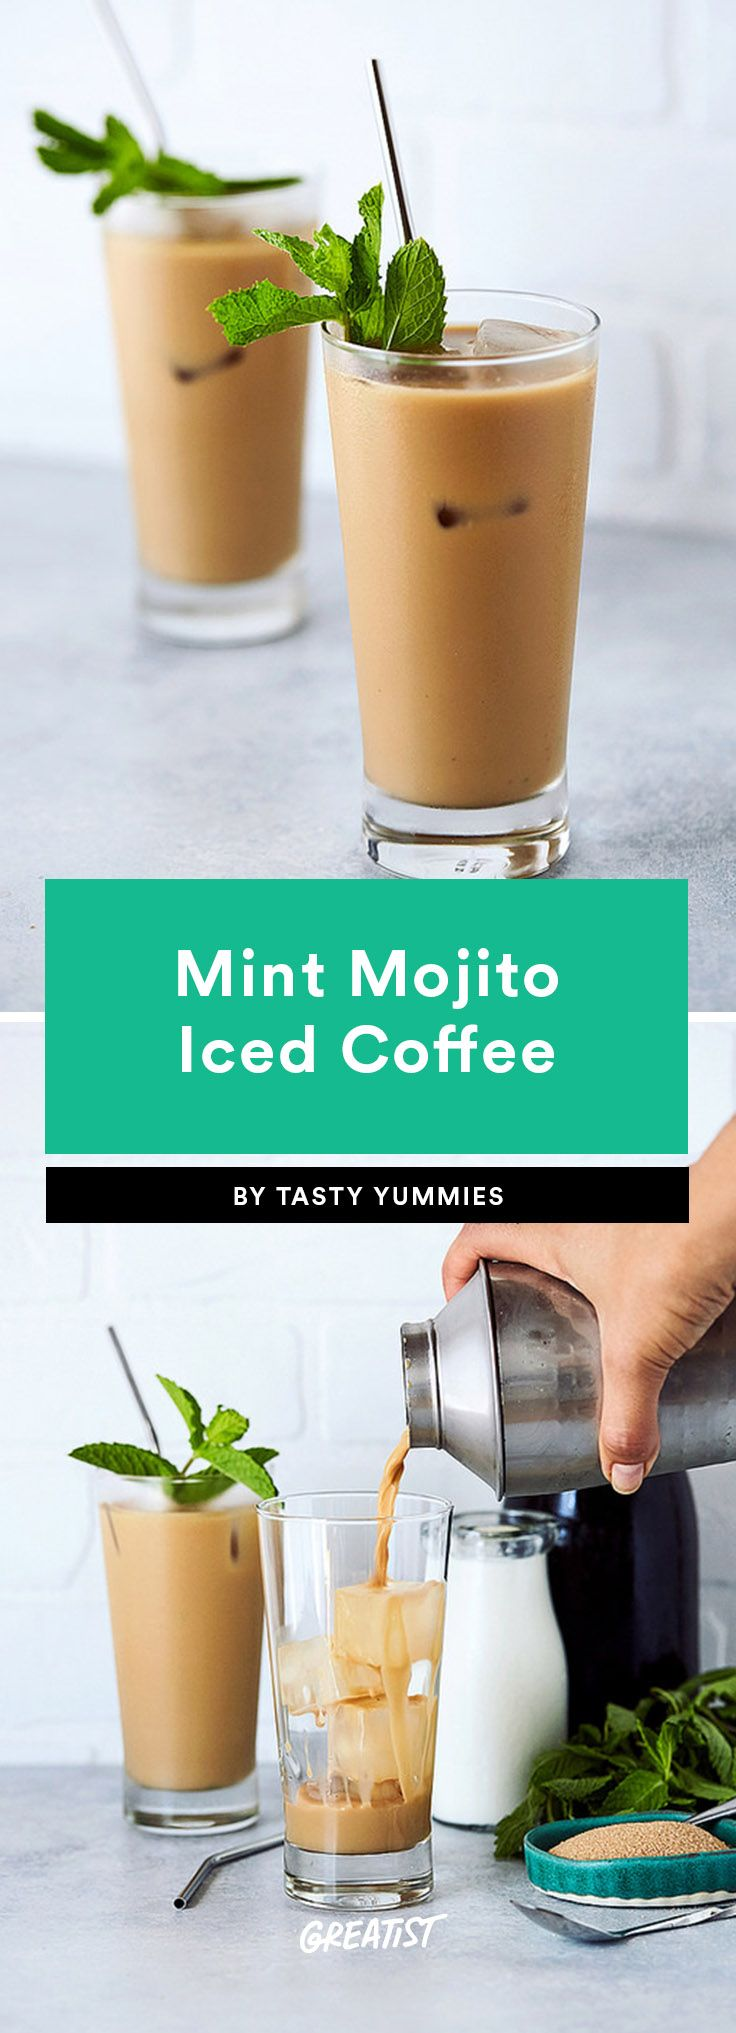 11 Ways to Make Iced Coffee Taste Even Better   – Coffee